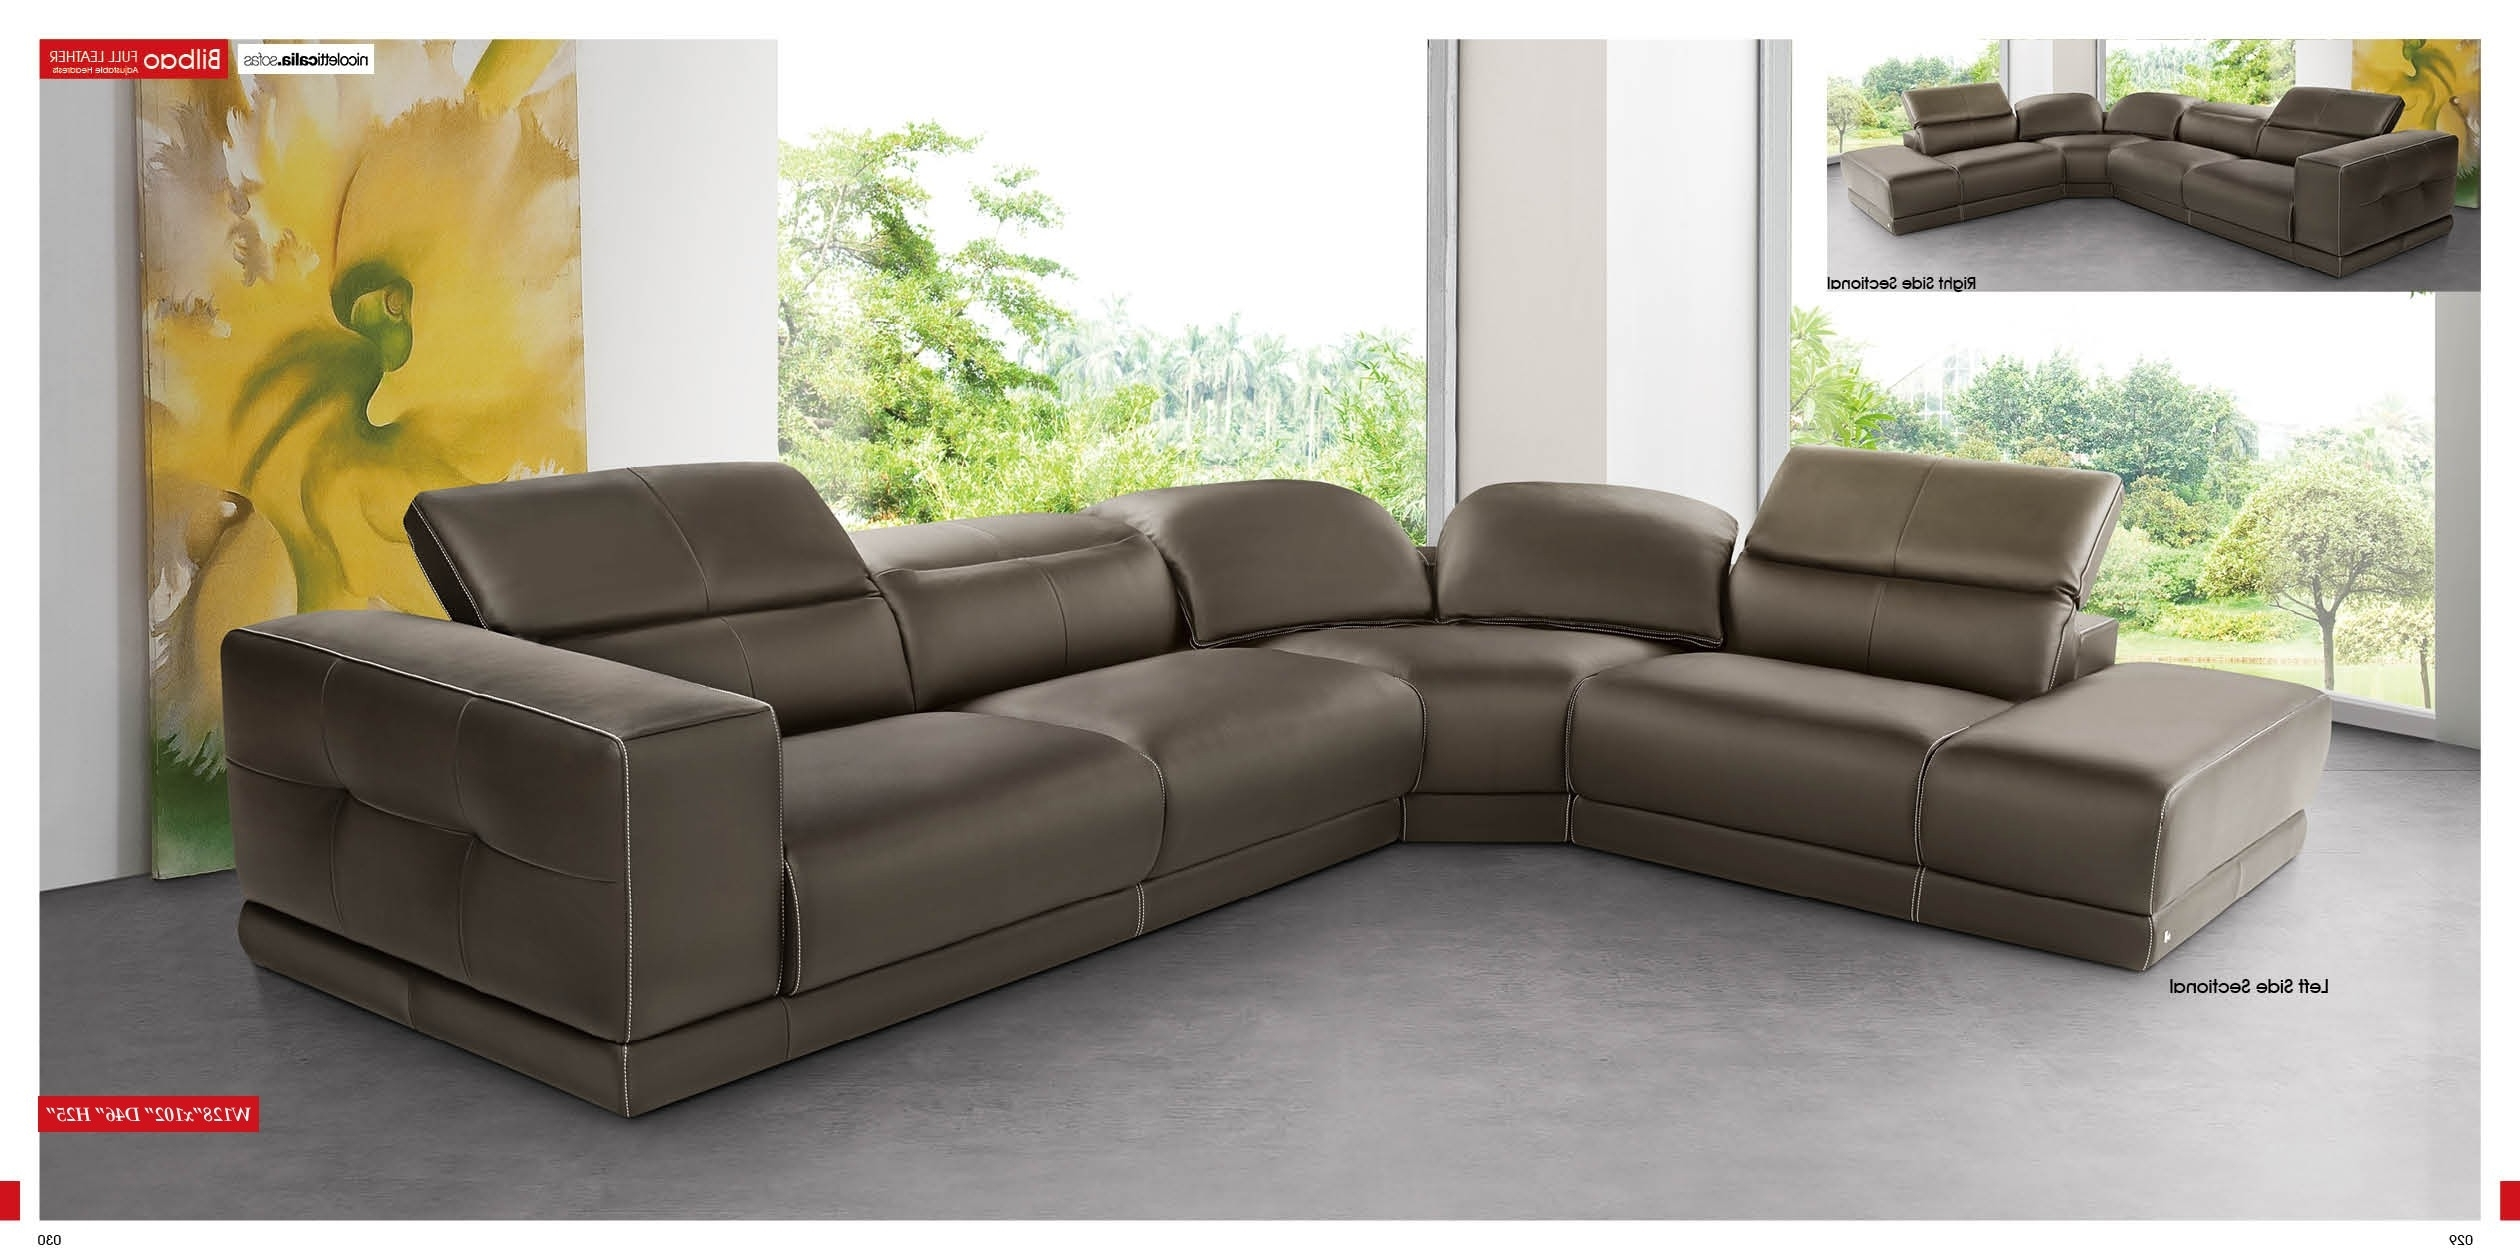 Trendy Furniture : Sectional Sofa 80 Inches 170 Cm Corner Sofa Recliner Pertaining To Sectional Sofas In Greenville Sc (View 6 of 20)